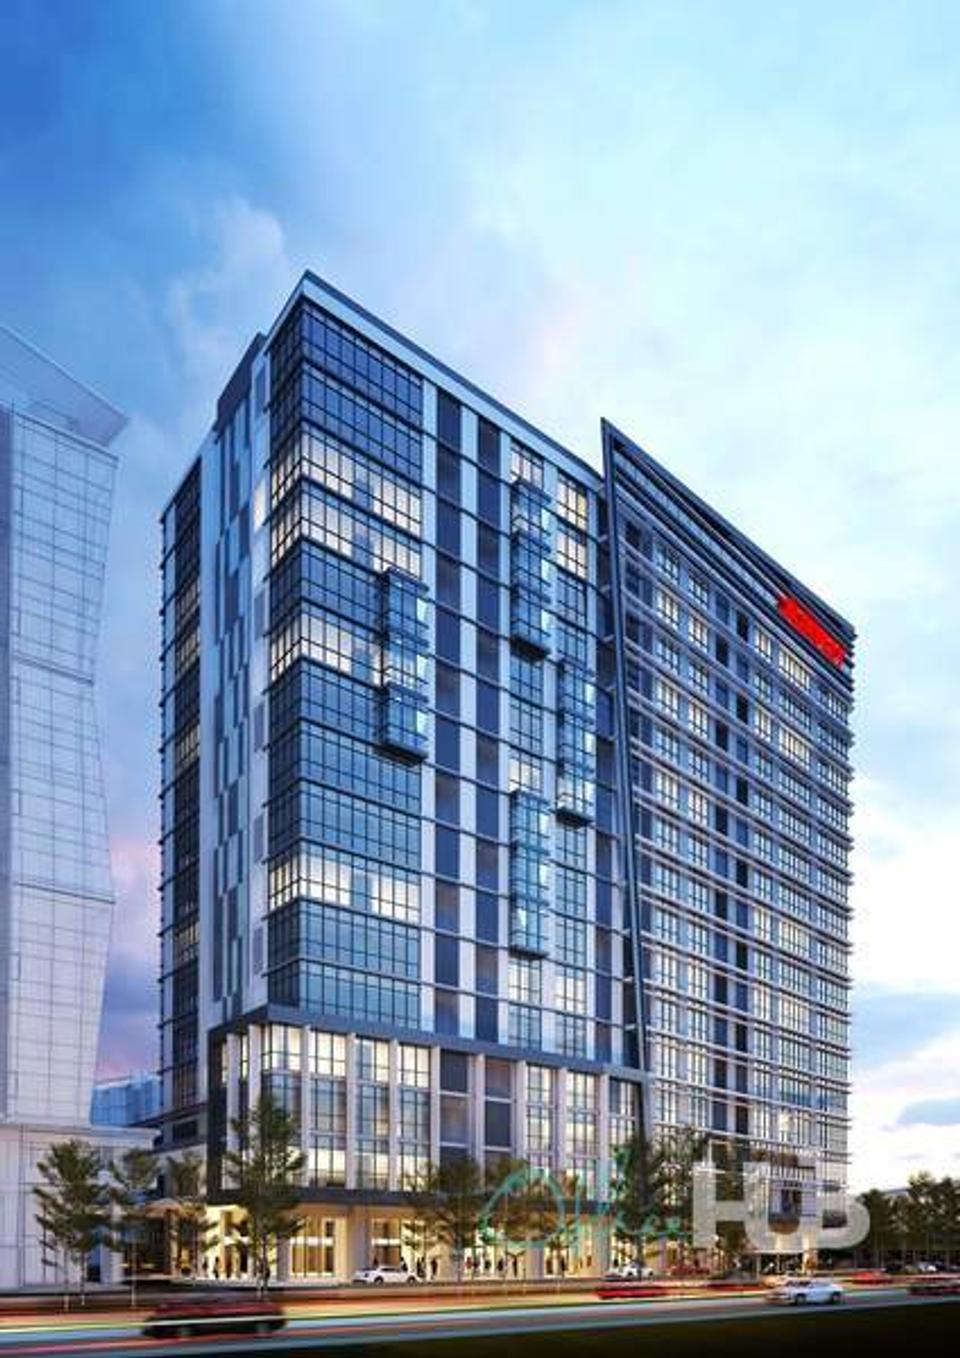 2 Person Private Office For Lease At Lingkaran SV, Sunway Velocity, Kuala Lumpur, 55100 - image 1